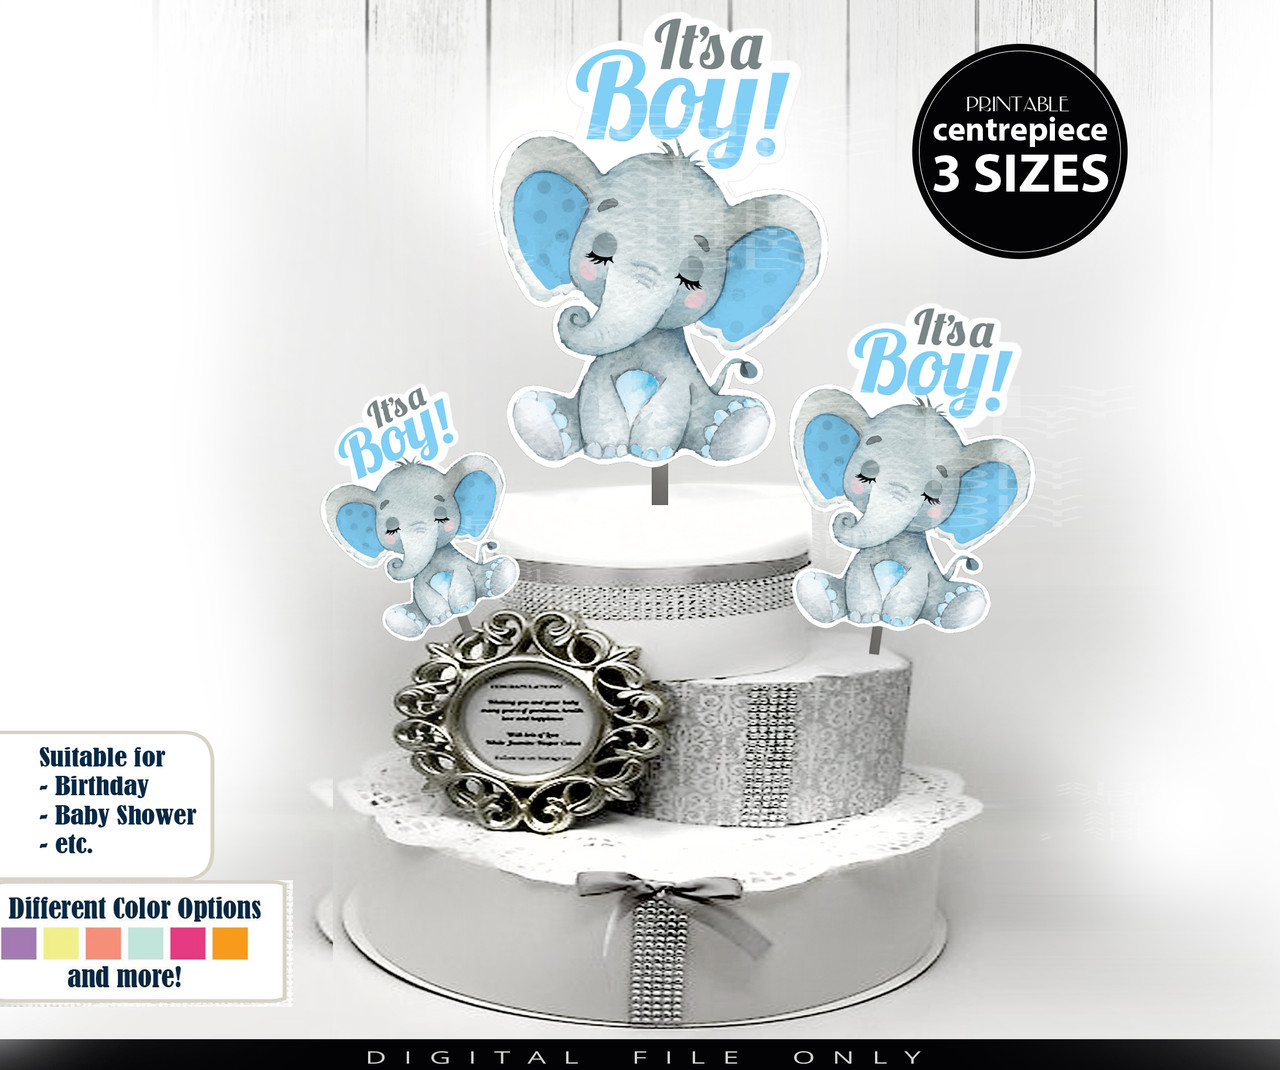 Sleeping Peanut Elephant Centrepiece For Baby Boy Shower In Light Blue Gray With Hair Bow Png 3 Sizesm Closed Eyes With Lashes Birthday Adly Invitations And Digital Party Designs Also, find more png clipart about baby shower clip art,animal clipart,africa clipart. baby shower